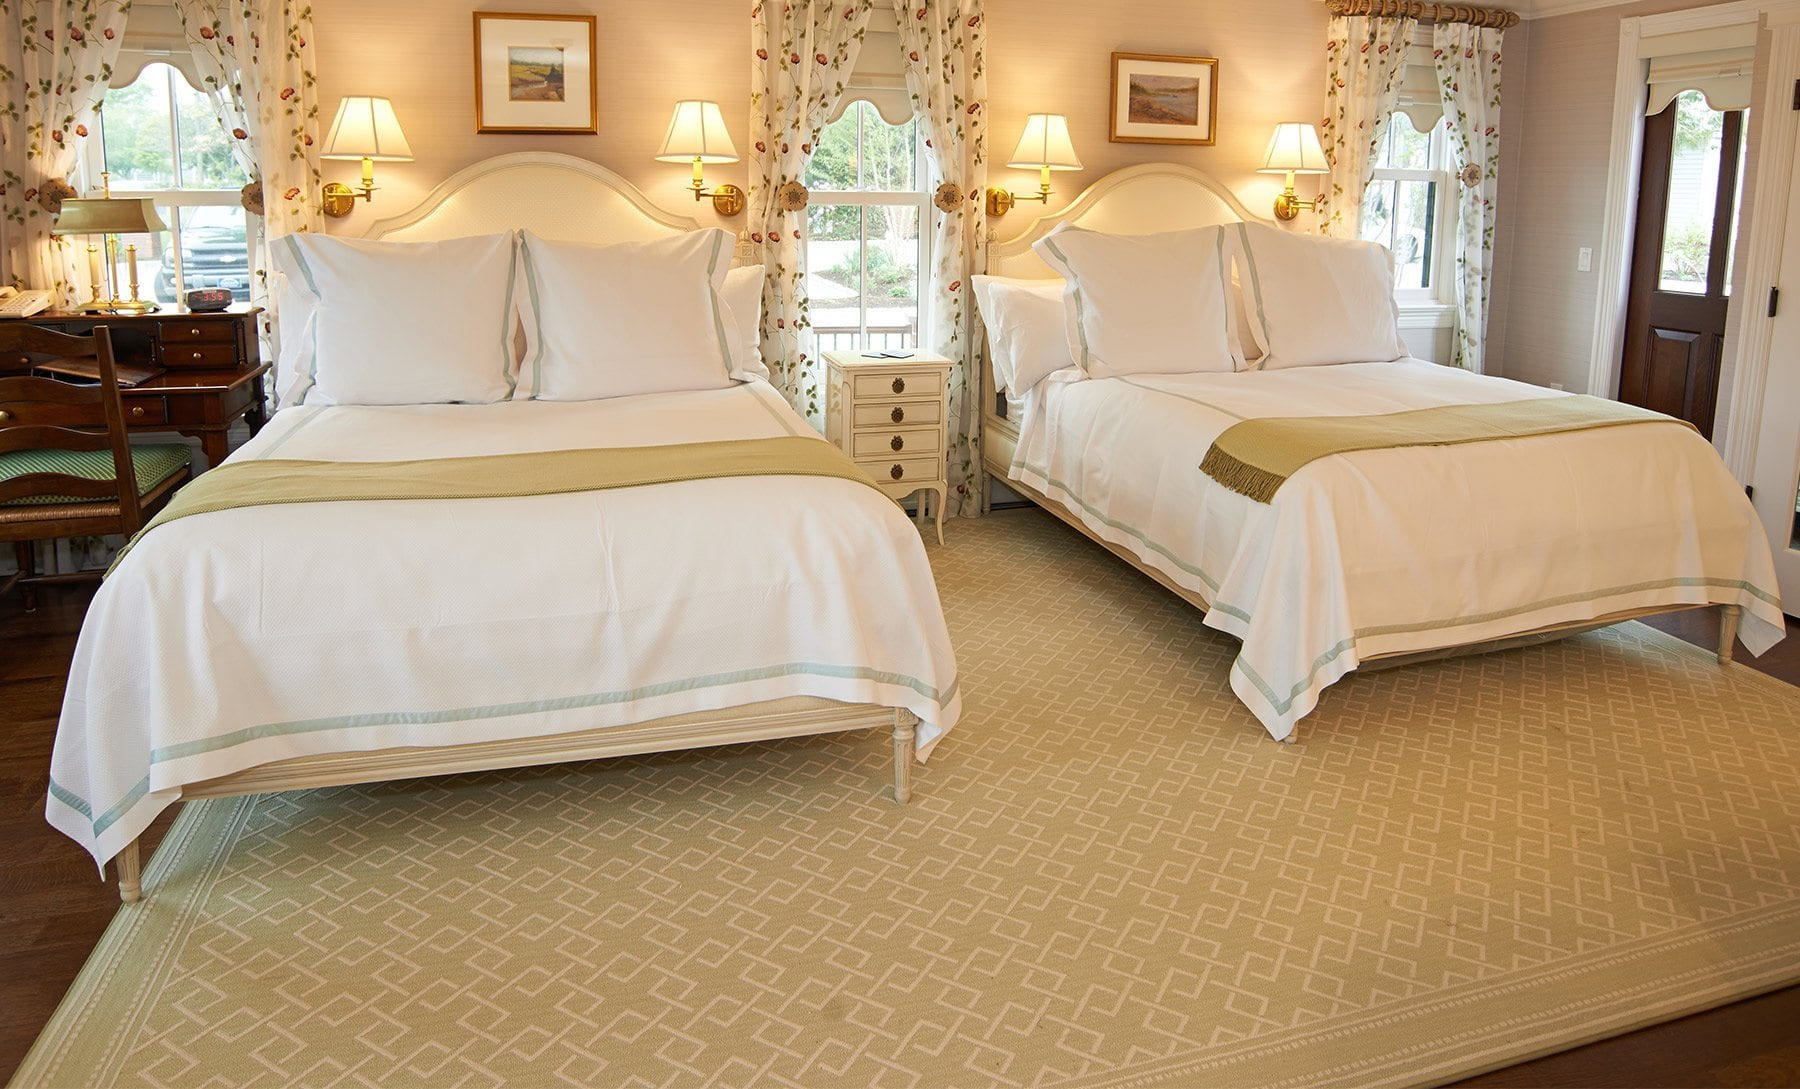 Two beds in guest house.